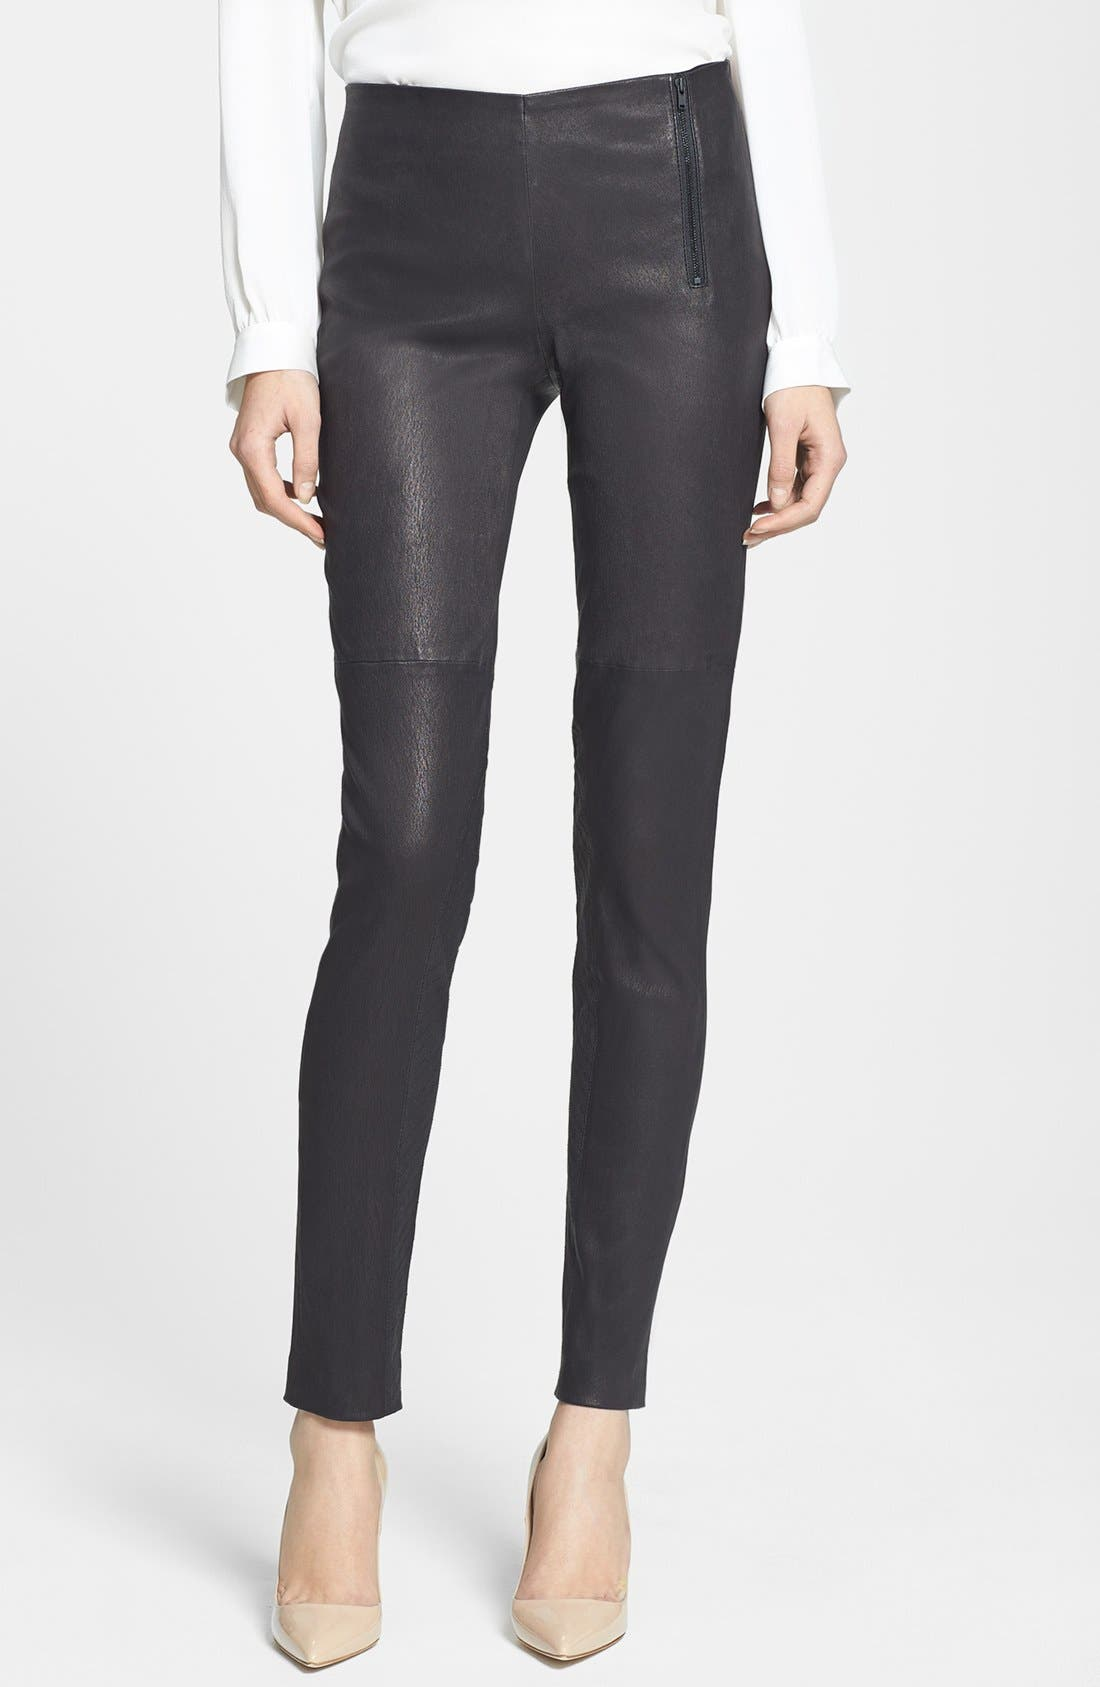 Main Image - Theory 'Redell L.' Leather Skinny Pants